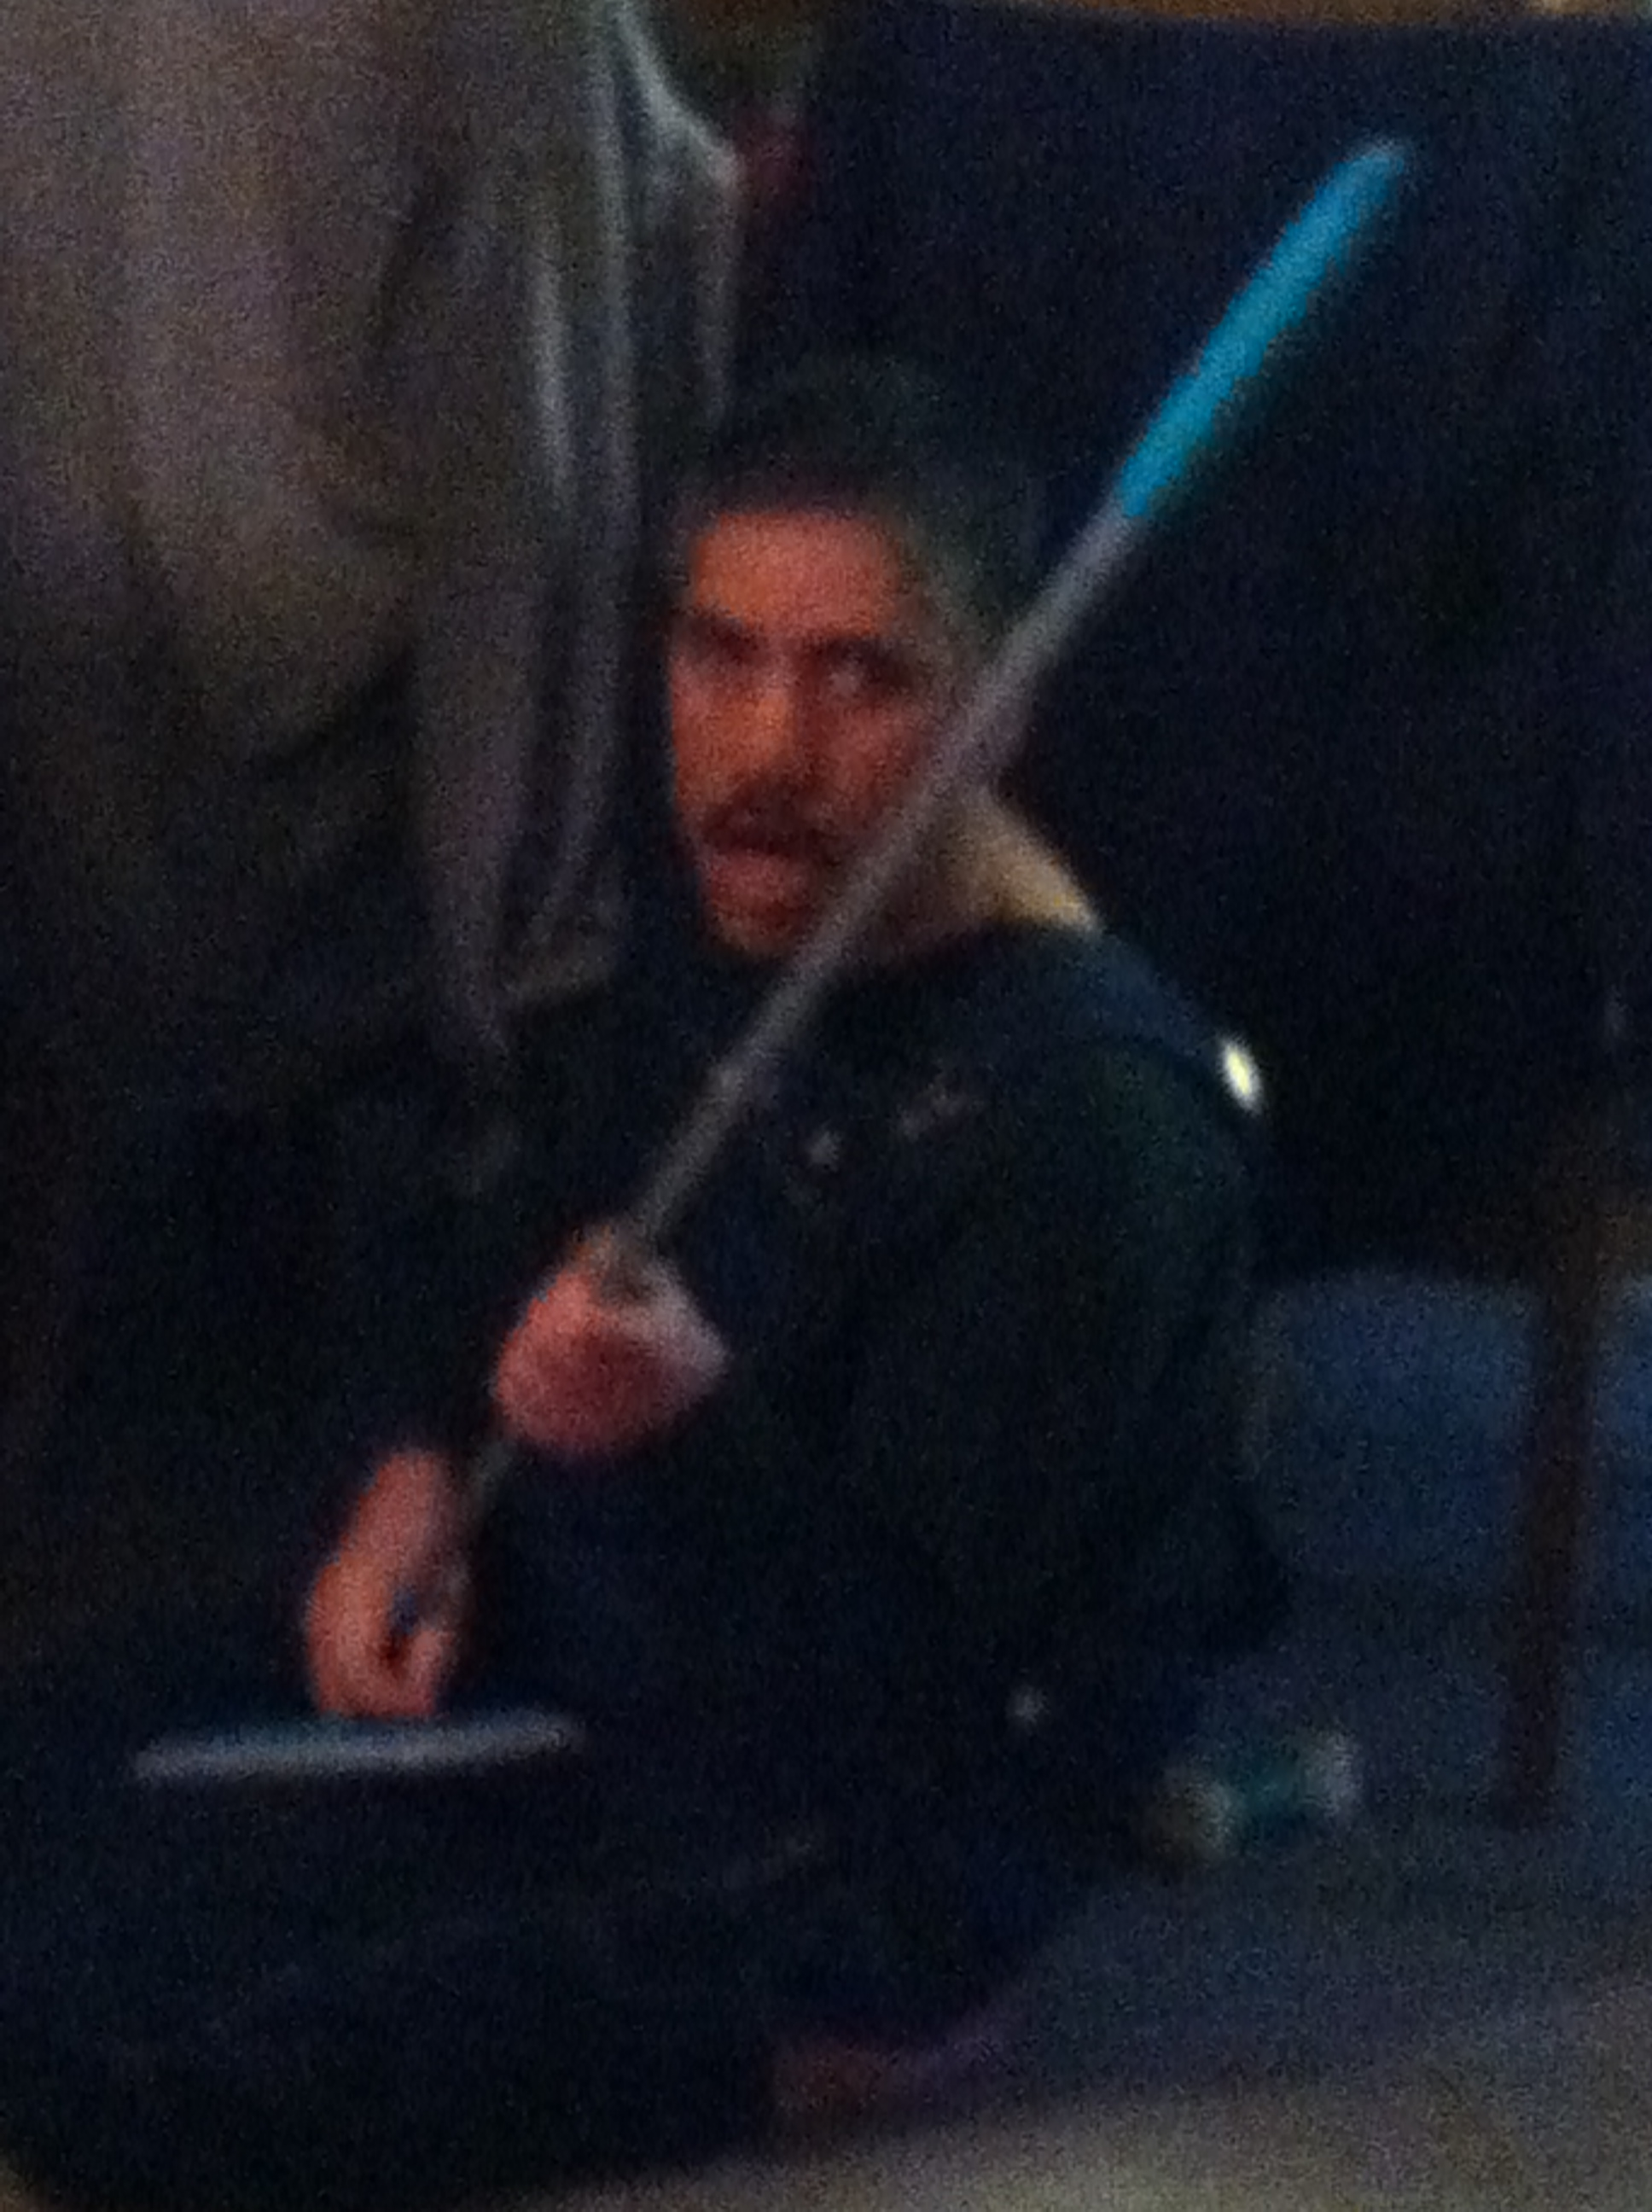 with broom in hand and acting like a jedi